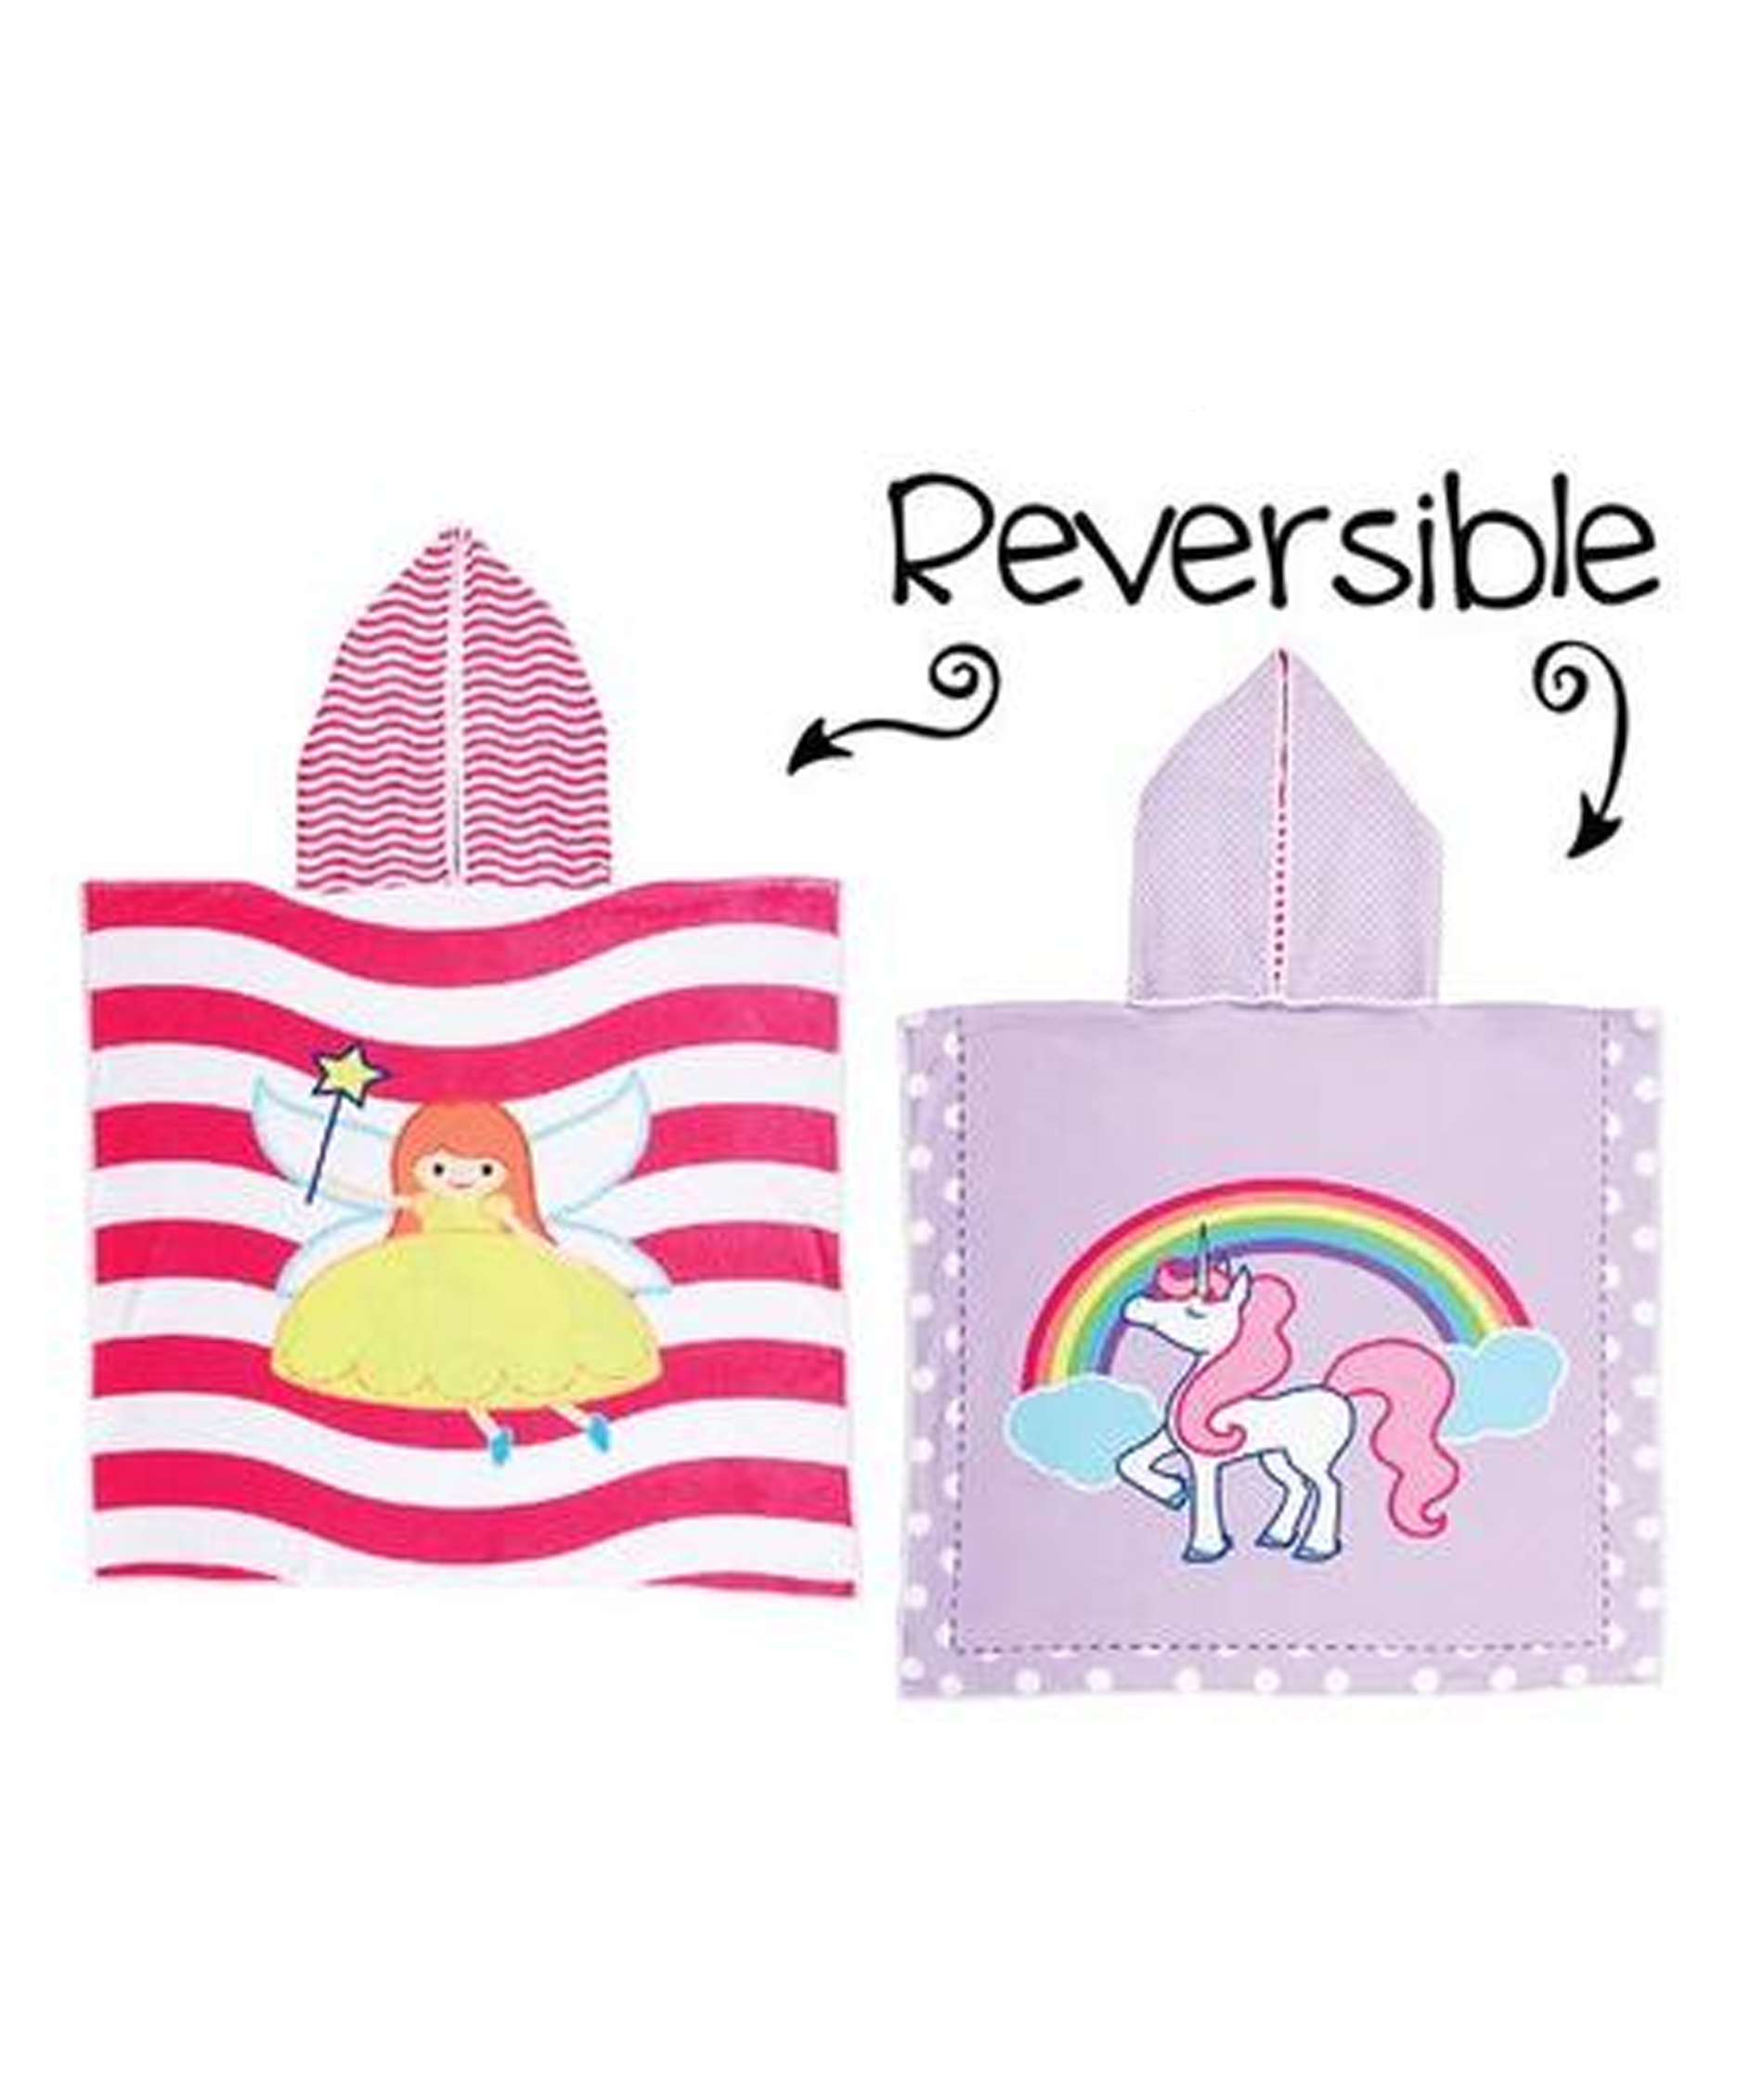 Flapjack Kids Reversible Cover-Ups - Fairy/Unicorn